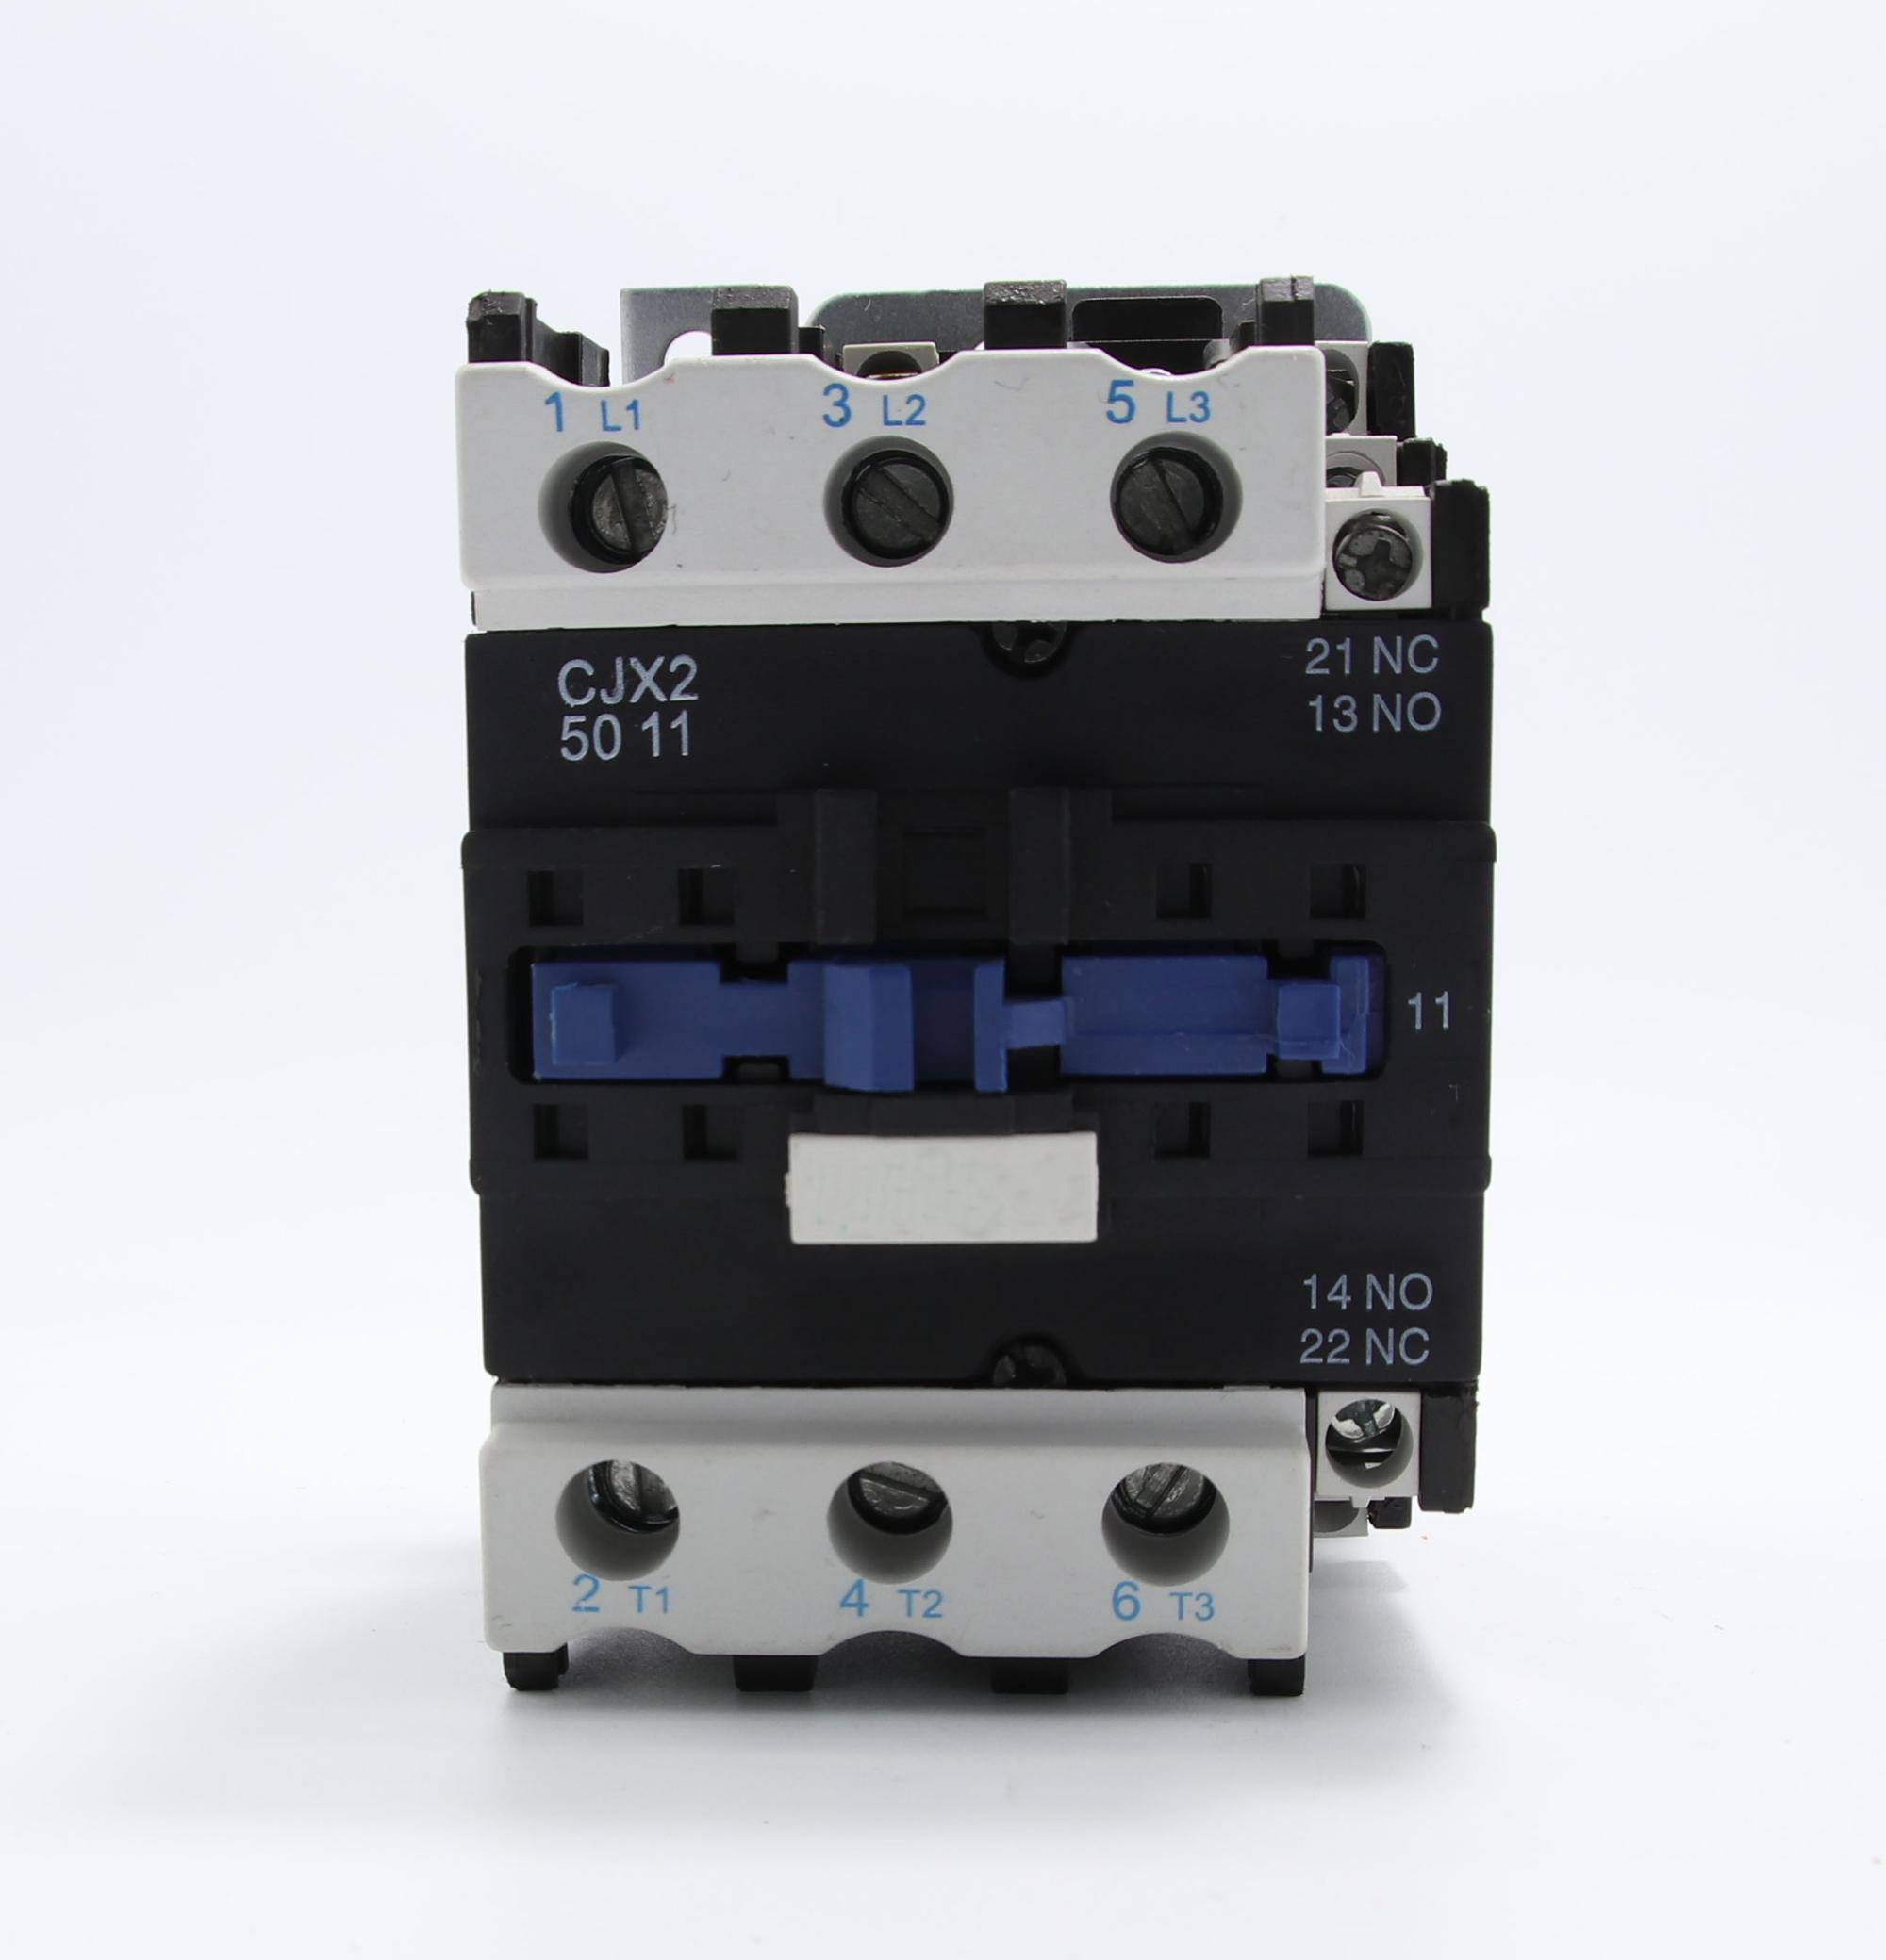 AC Magnetic Contactor CJX2 50 LC1D50 Contactor Price